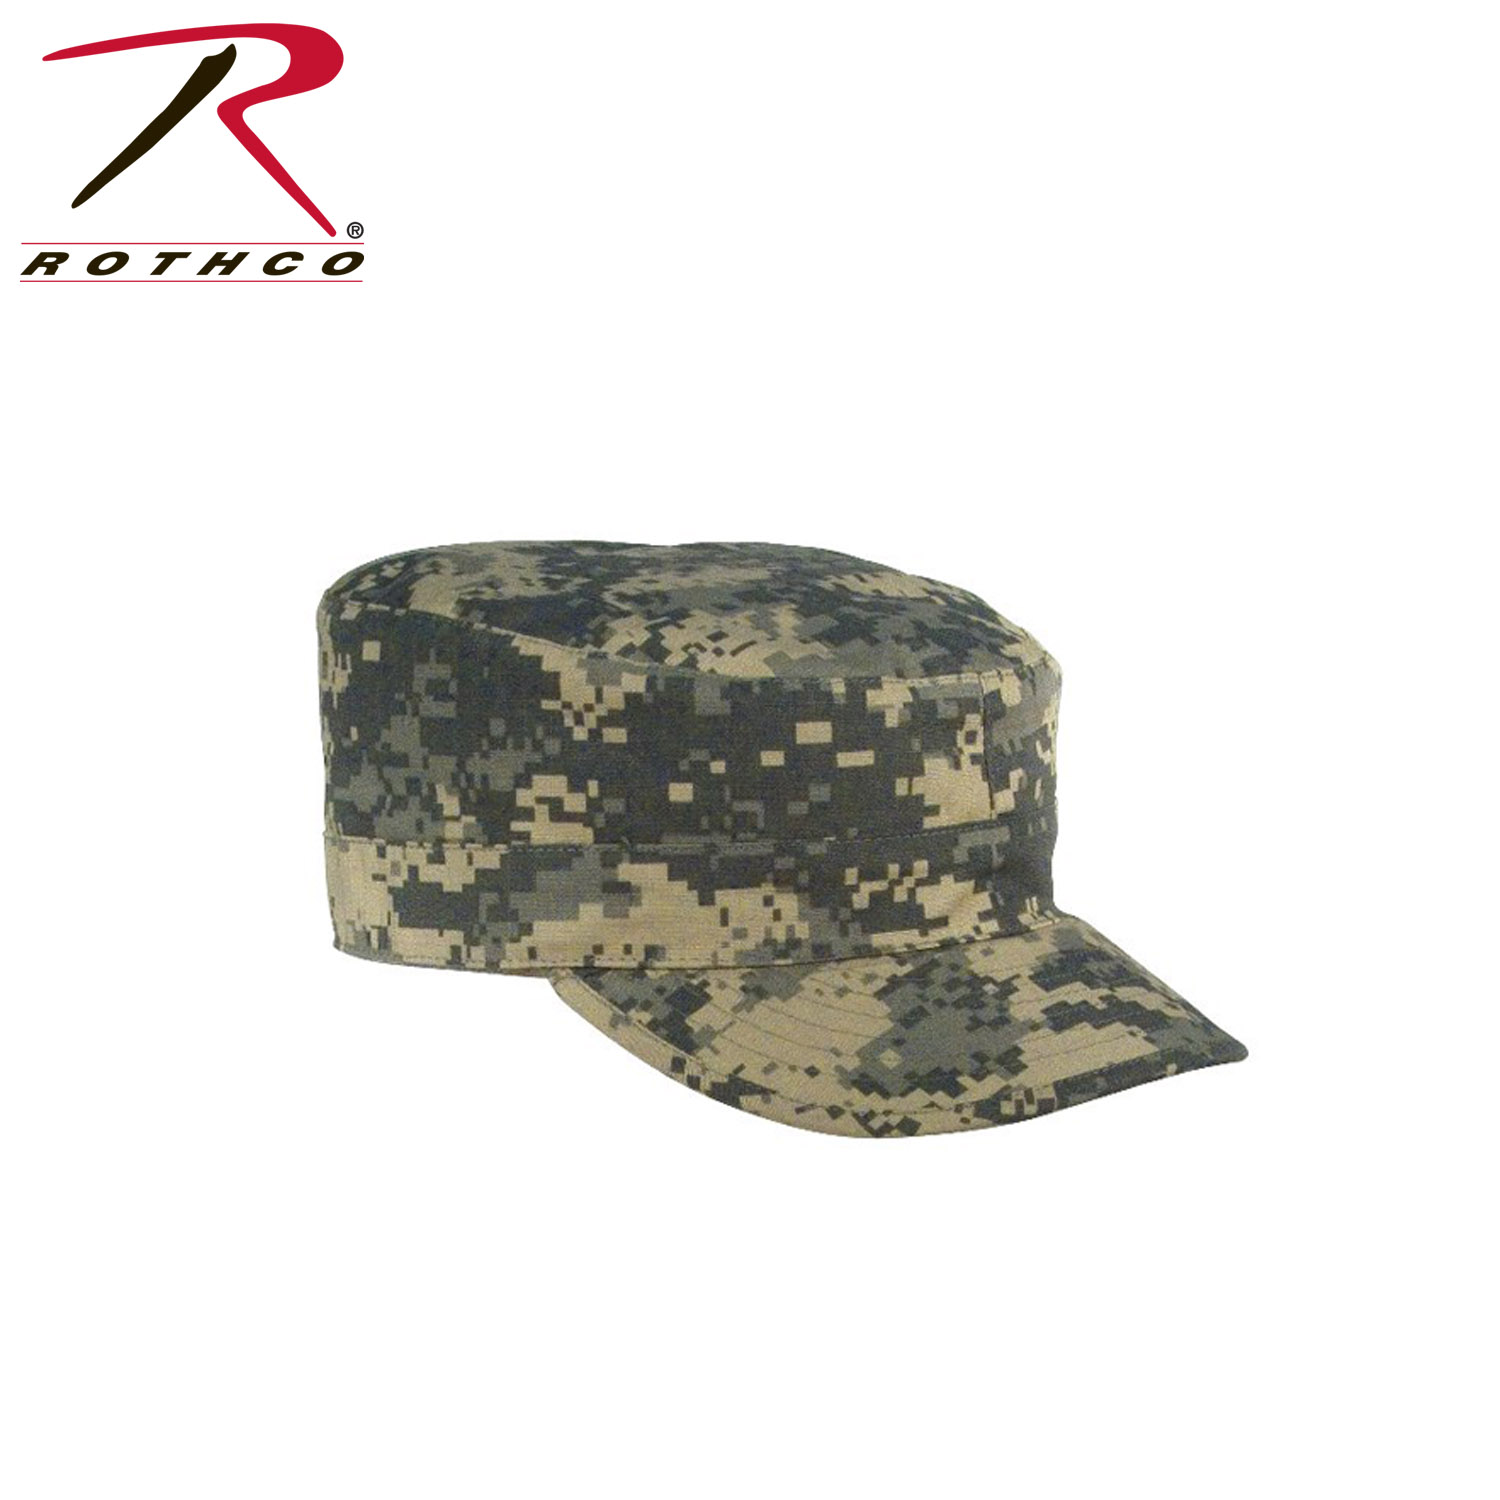 Details about Rothco 5647 ACU Digital Camo Gov t Spec 2 Ply Rip-Stop Army  Ranger Fatigue Cap 86df6d5c275